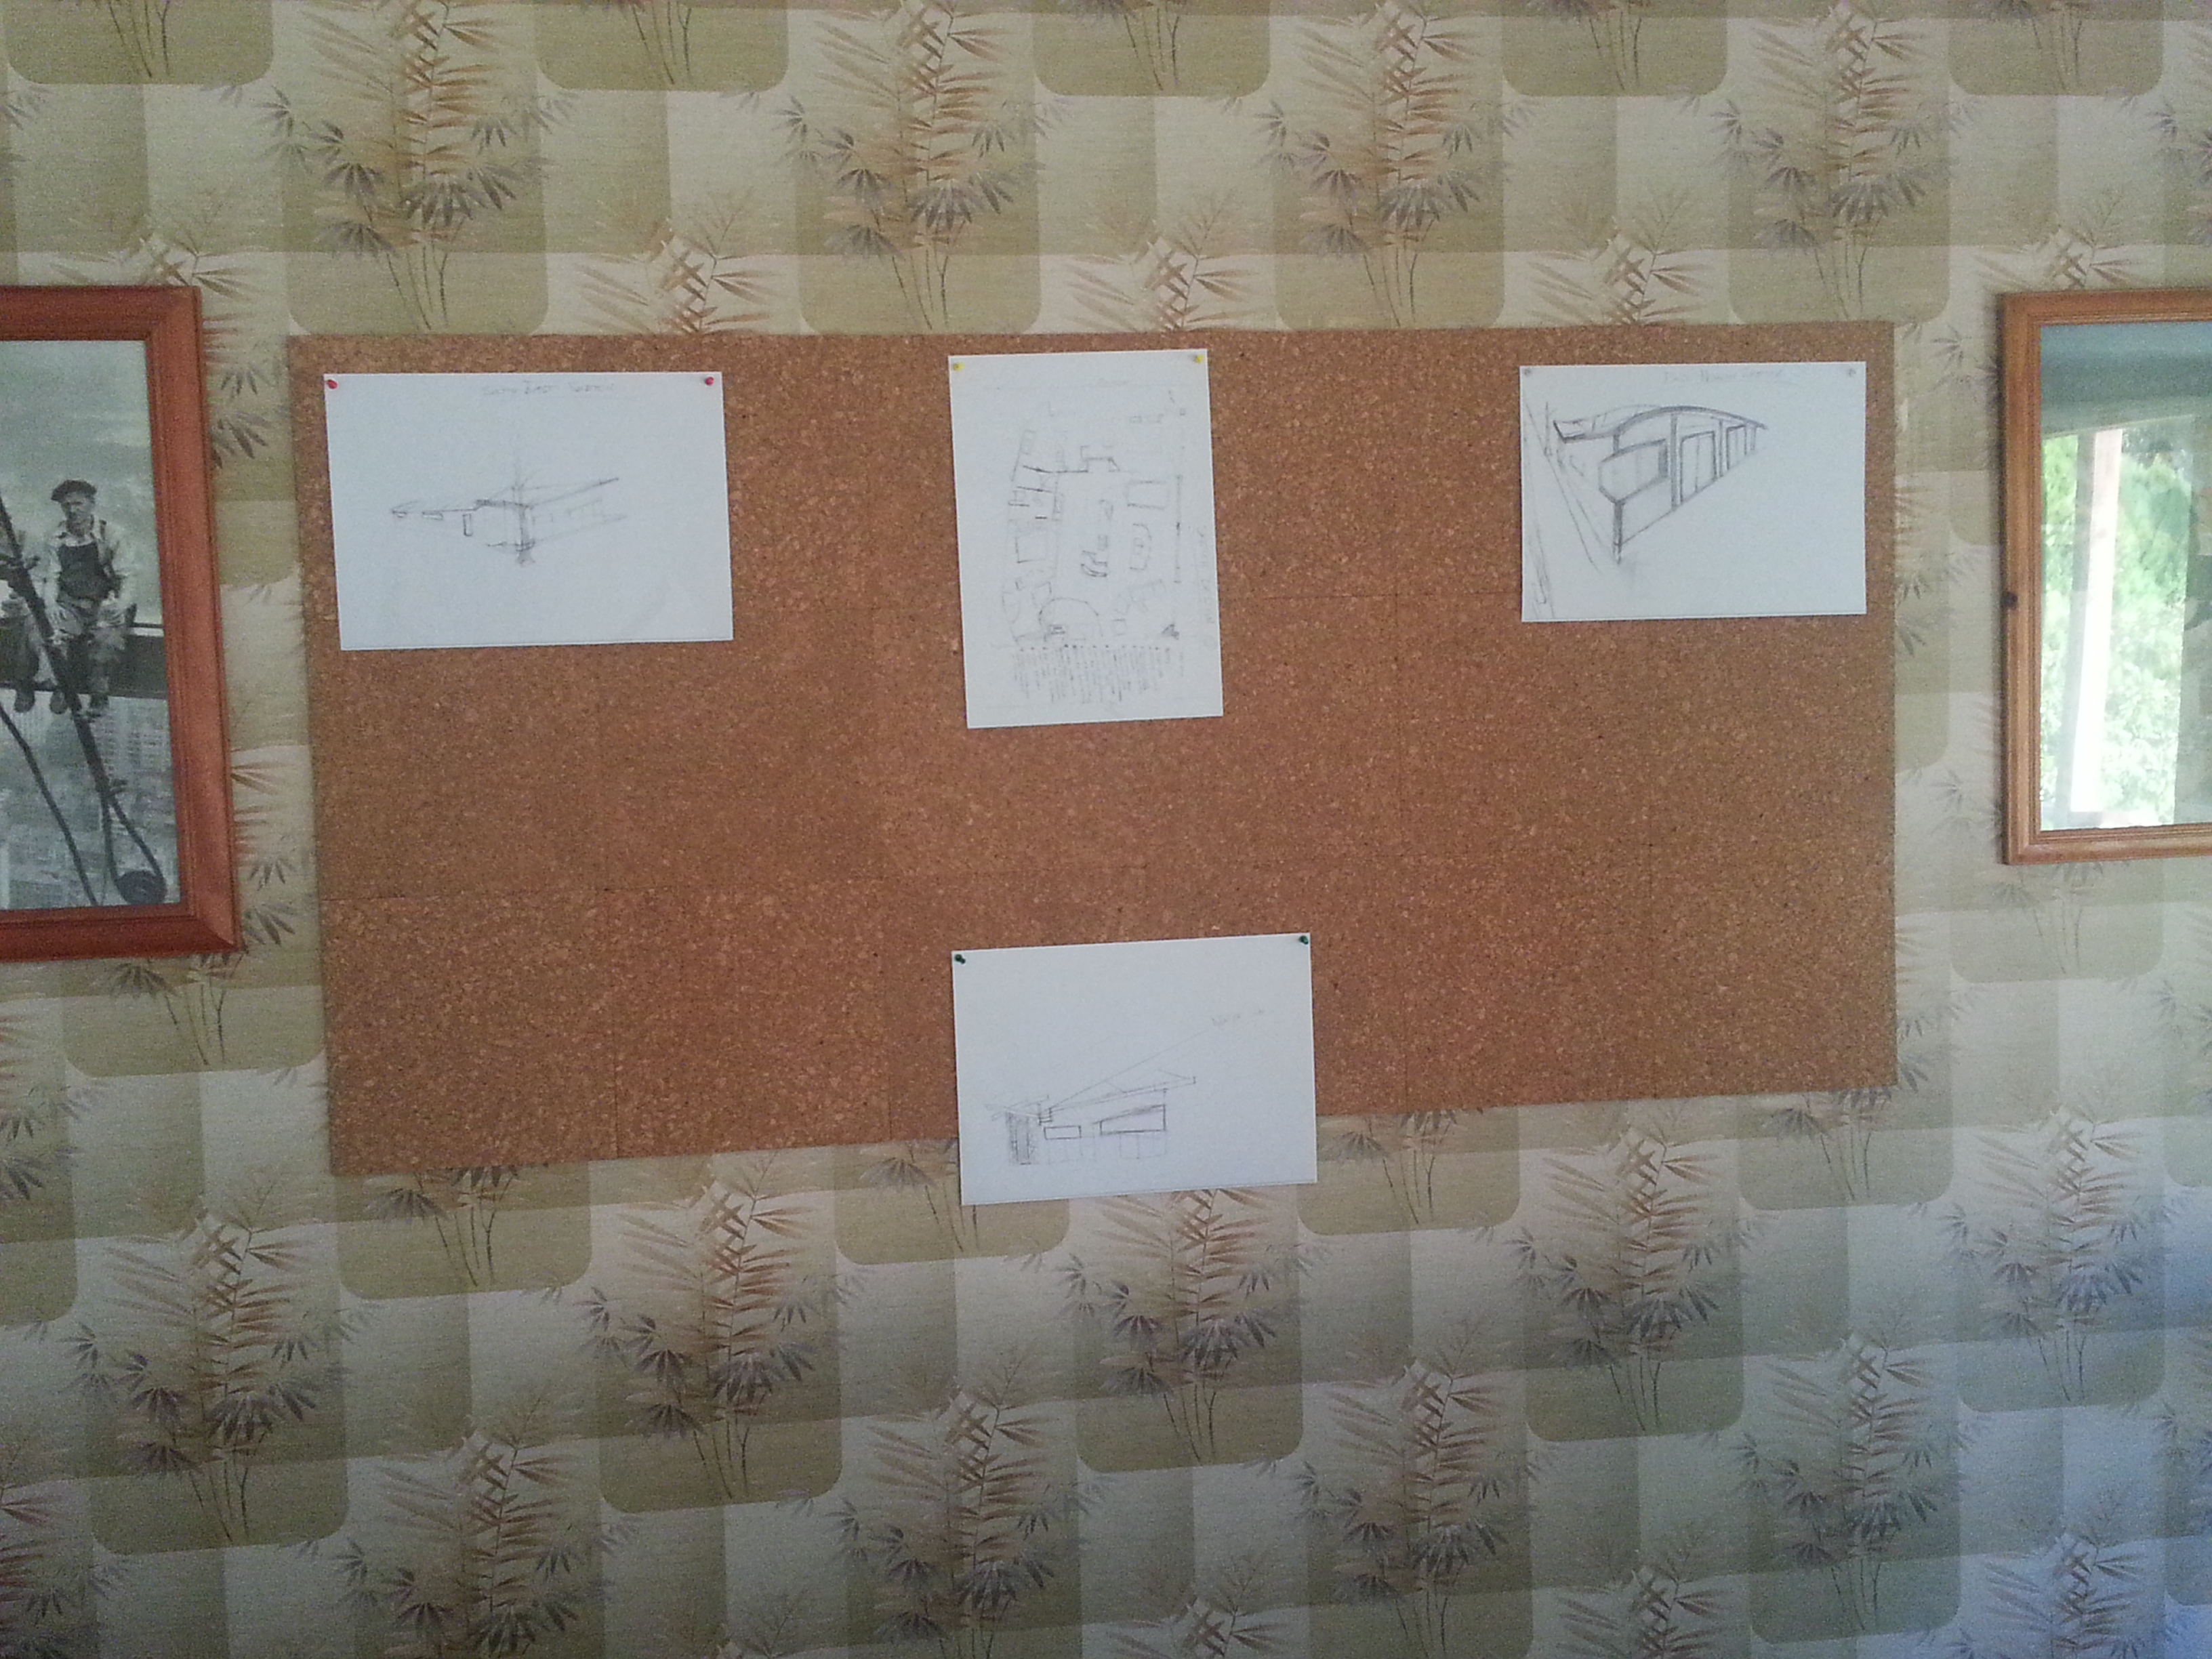 large cork board for pinning design sketches